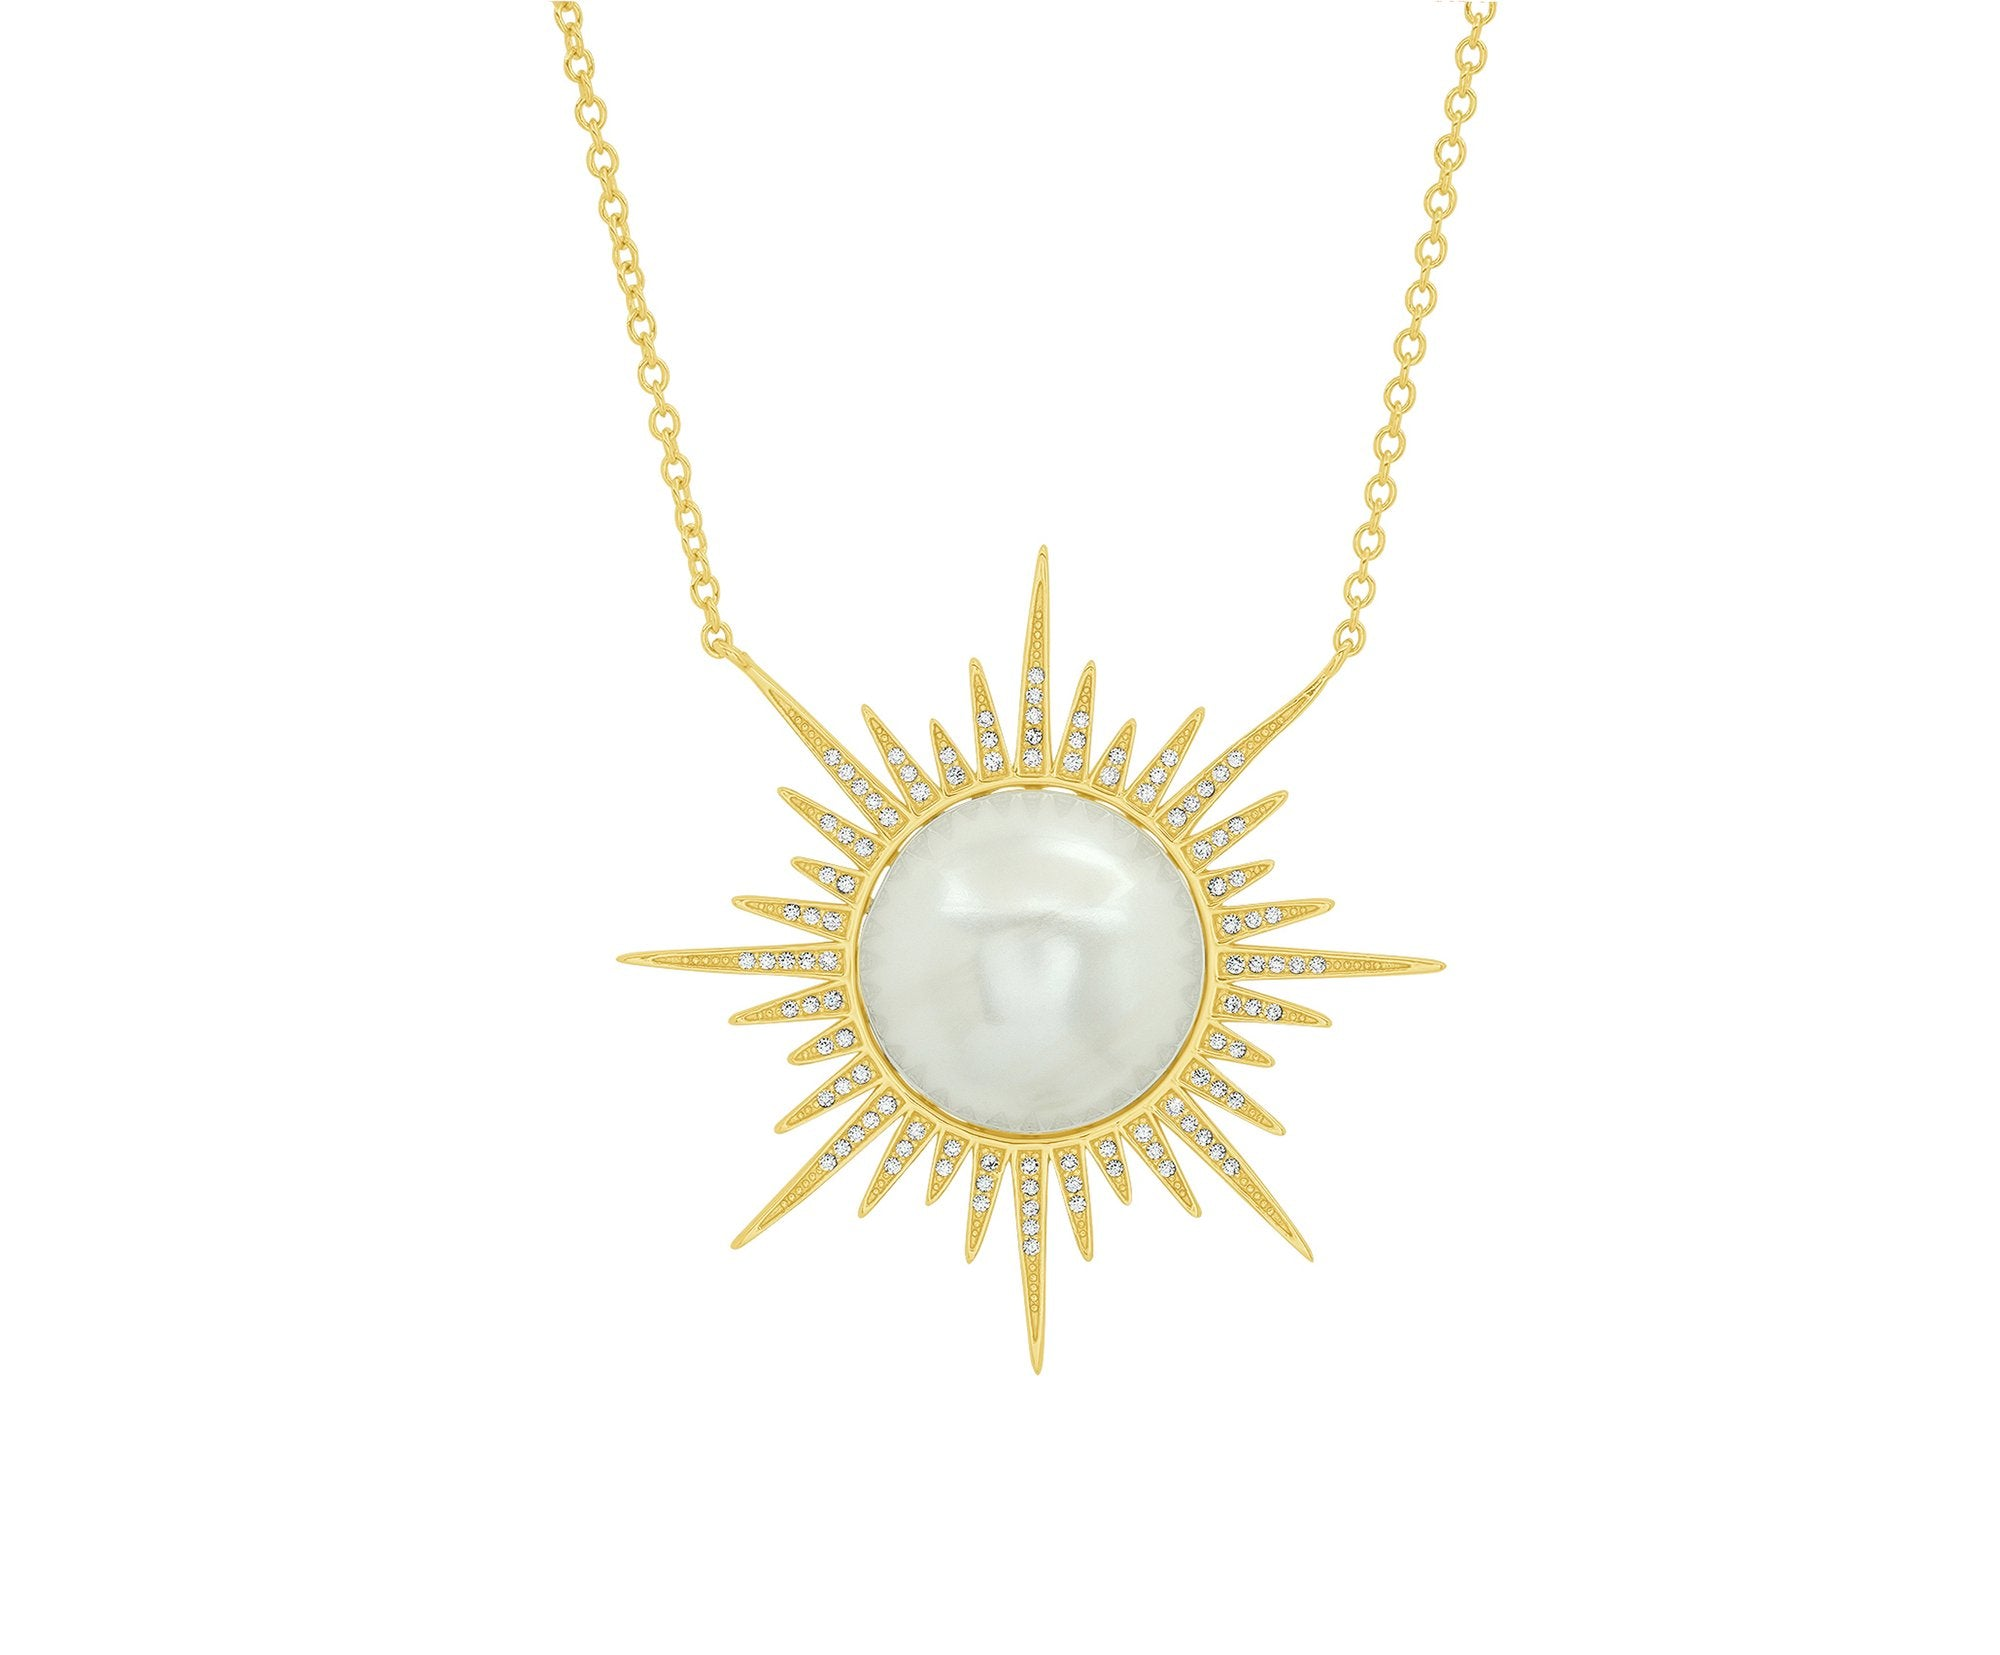 Sunburst Necklace in 18k Yellow Gold